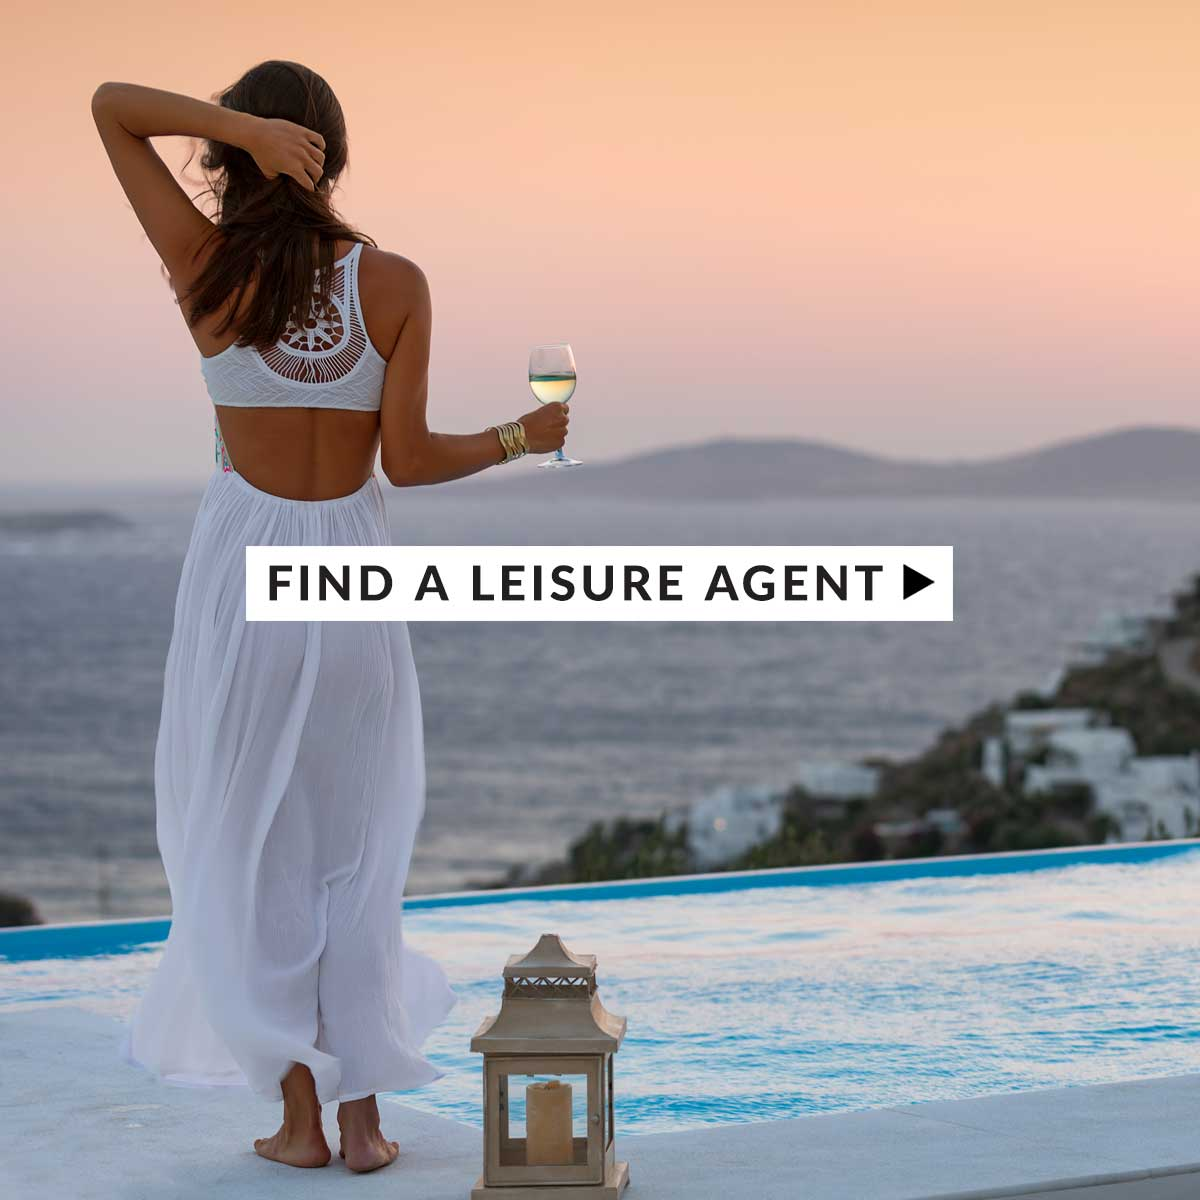 Find a Leisure Agent